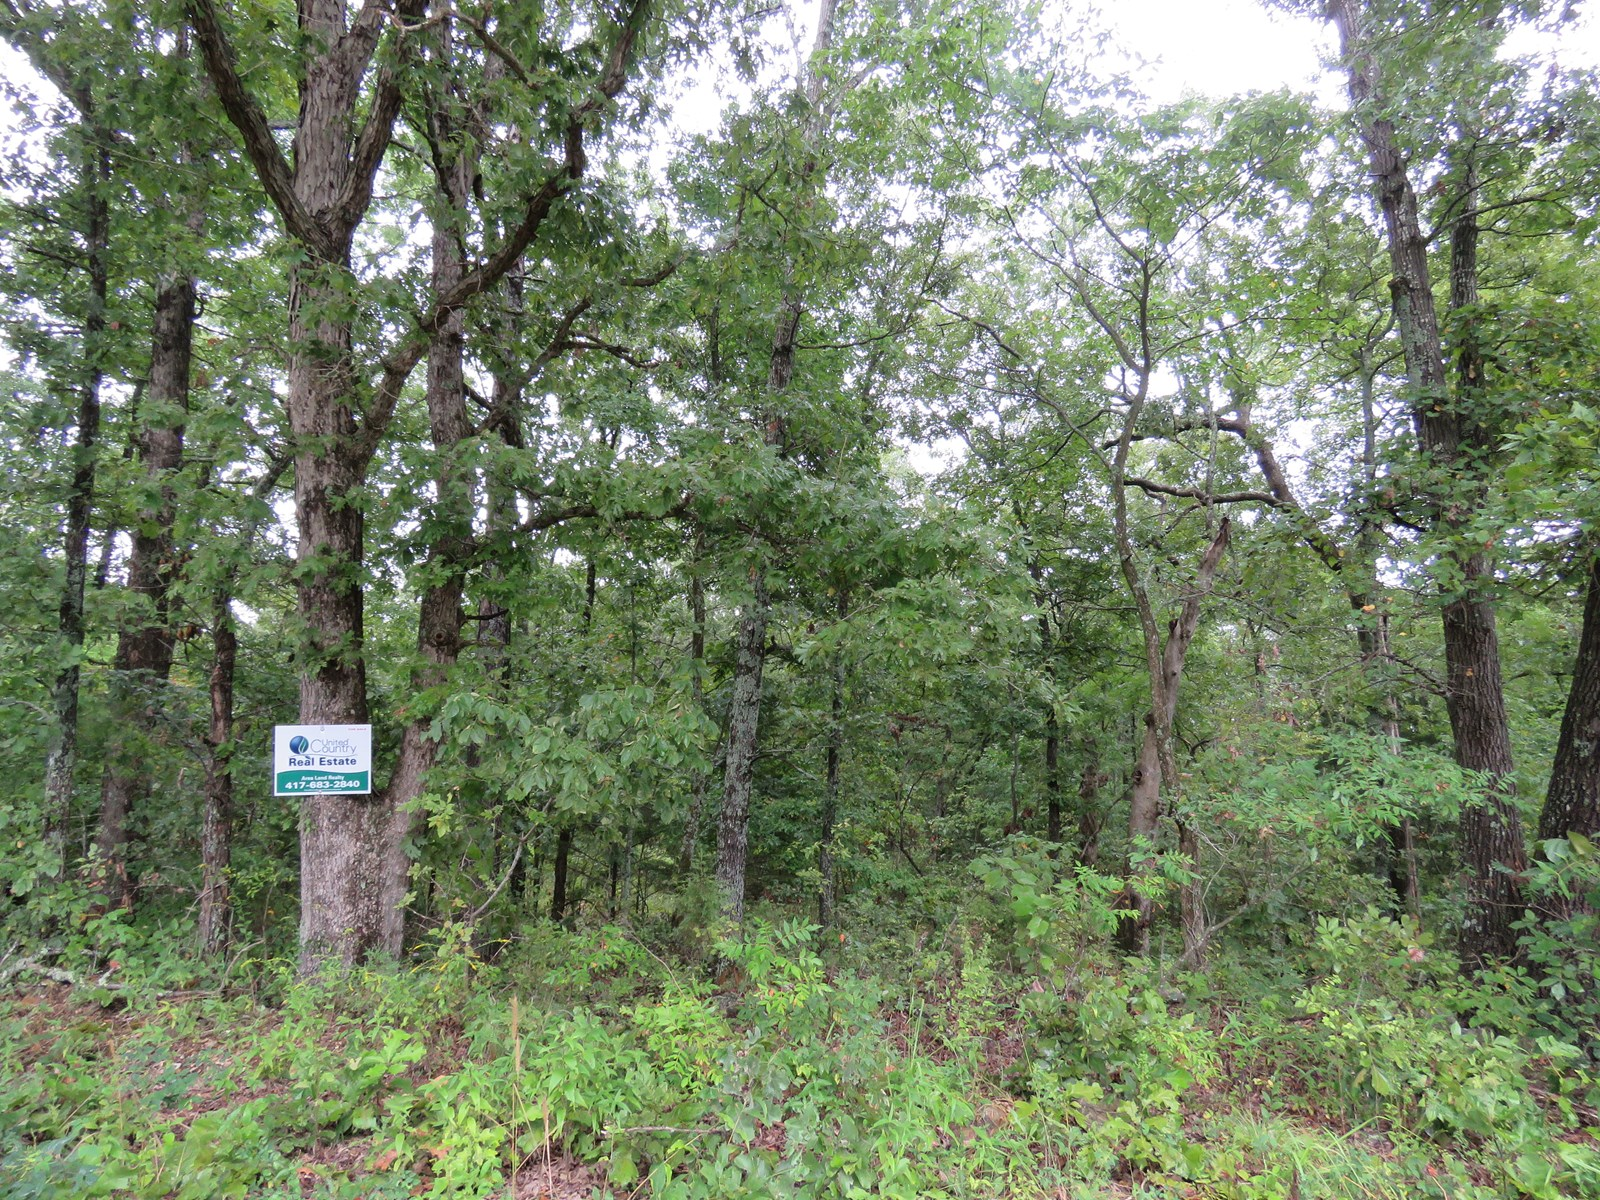 Land for sale in Ozark County Missouri